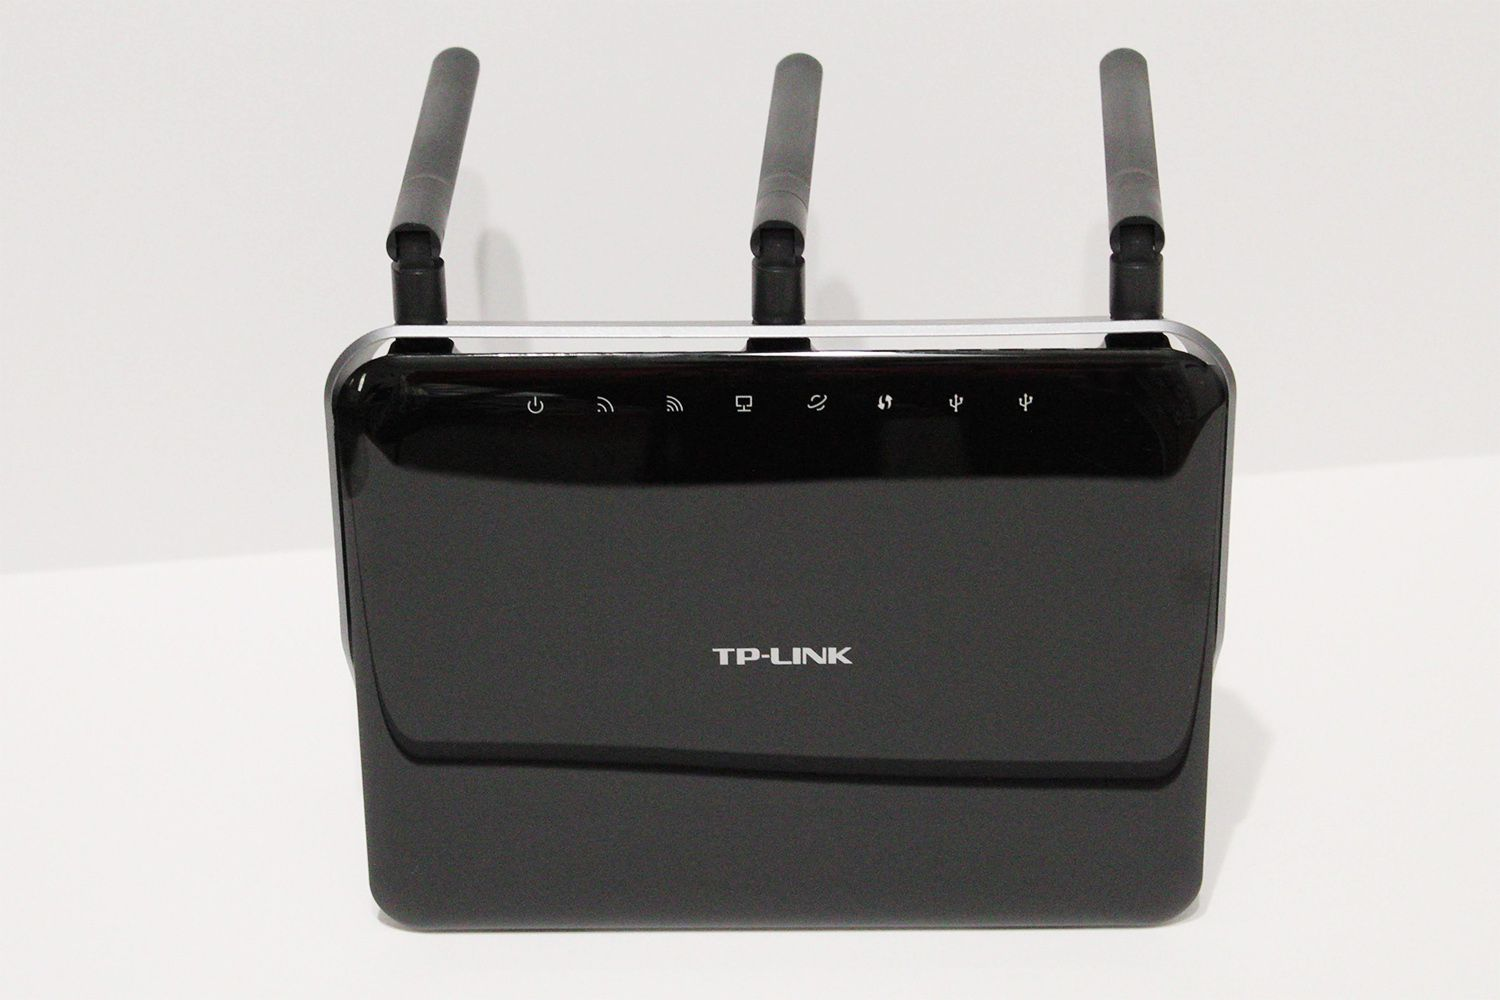 The TP-Link Archer C9 AC1900 is a budget-friendly router, so it doesn't include too many of the features you see in newer, more expensive models. It doesn't include Alexa control or MU-MIMO technology, but it's supposed to provide a long signal range for larger homes, as well as support fast enough speeds for online gaming and 4K media. I tested the TP-Link AC1900 alongside several other long range routers to see how well it performs in the real world. Design: Fingerprints galore The Archer AC1900 definitely isn't the most attractive router I've seen. The version I tested is black, but TP-Link also makes the C9 in white. The gloss finish gives the AC1900 a cheap look, and it unfortunately shows each and every smudge and fingerprint when you touch the surface. The indicator lights sit on the front face, and you can easily see the network status with a quick glance. The C9 has a slate grey plastic border, which goes around the top perimeter, angles outward, and serves as a stand for the router. The stand allows you to position the AC1900 horizontally or vertically. However, you'll have to move your cabling under the stand to place the router in a horizontal position, so you can't easily move it between the two orientations without disconnecting your cables. The Archer C9 has three removable antennas you can swivel and adjust. Although they're a necessary evil, the antennas are extremely long (almost six inches), so the router looks oddly tall when in the vertical position with the antennas extended. Most of the ports are positioned on the rear, with the exception of the second USB port that sits along the side next to the Wi-Fi button. Setup: Takes less than 10 minutes Setup is simple, and you can use the Tether app or the TP-Link site. There's a QR code in the quick setup leaflet, so you can easily find the app. As it goes with most routers, you'll find a temporary network name, password, and login info on the label. The app walks you through the setup process step-b